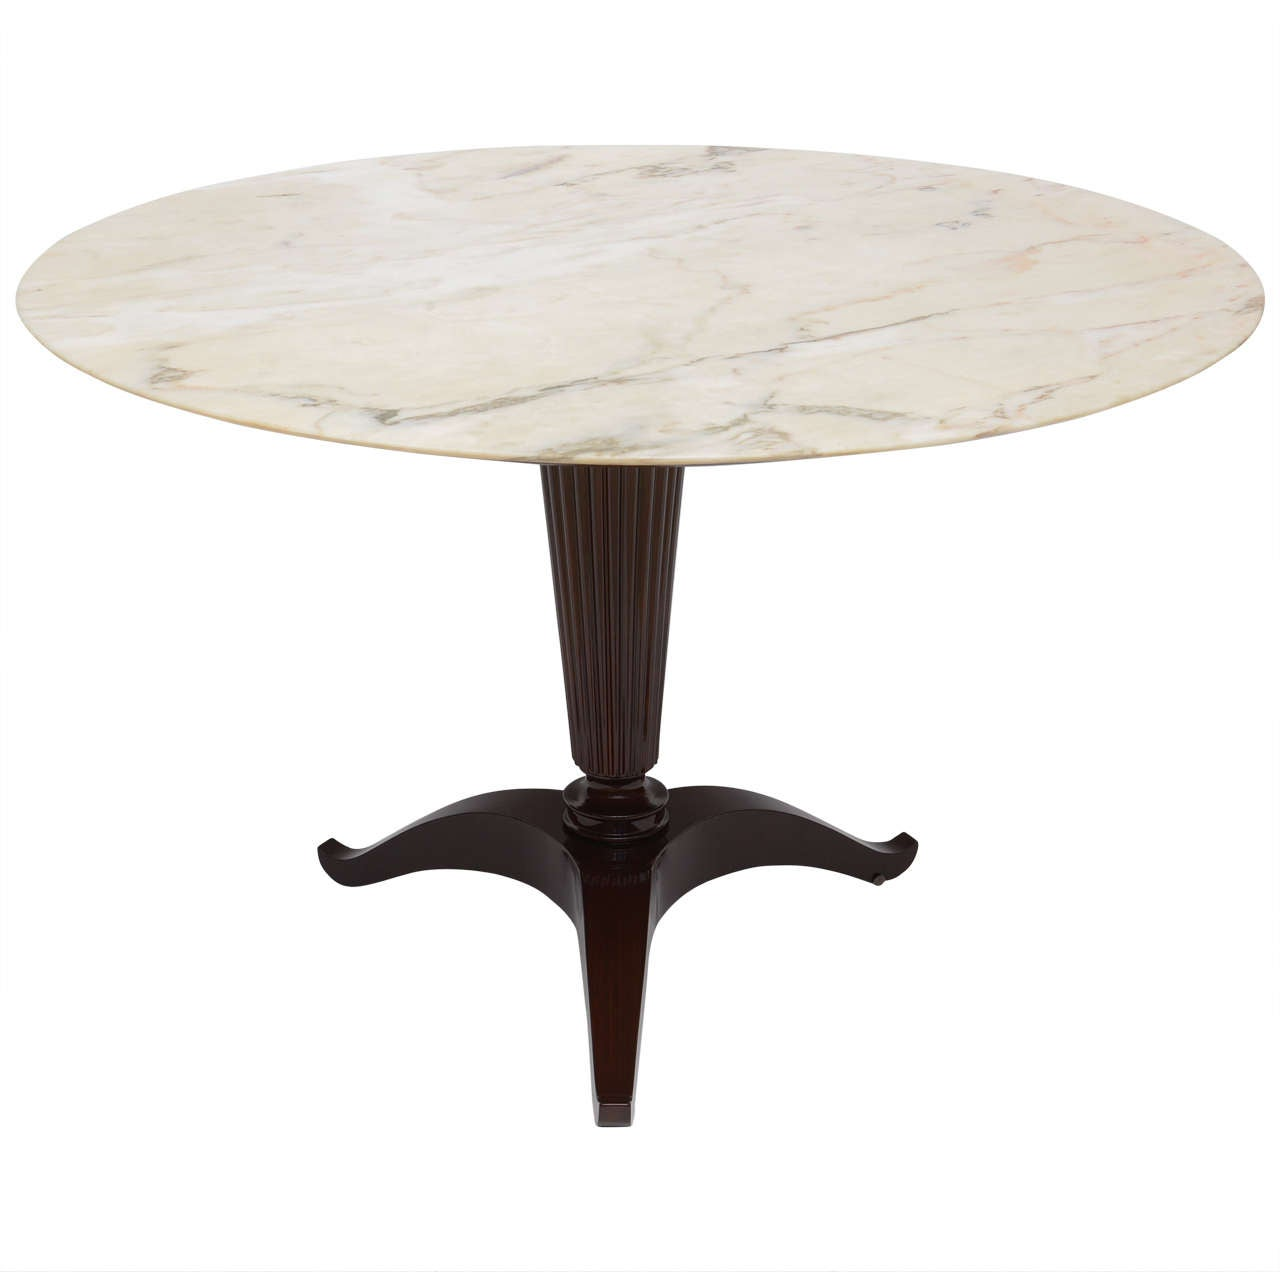 Michael taylor cyprus tree trunk dining table at 1stdibs - Italian Modern Onyx And Walnut Center Or Dining Table By Paolo Buffa Cypress Tree Trunk Dining Table By Michael Taylor